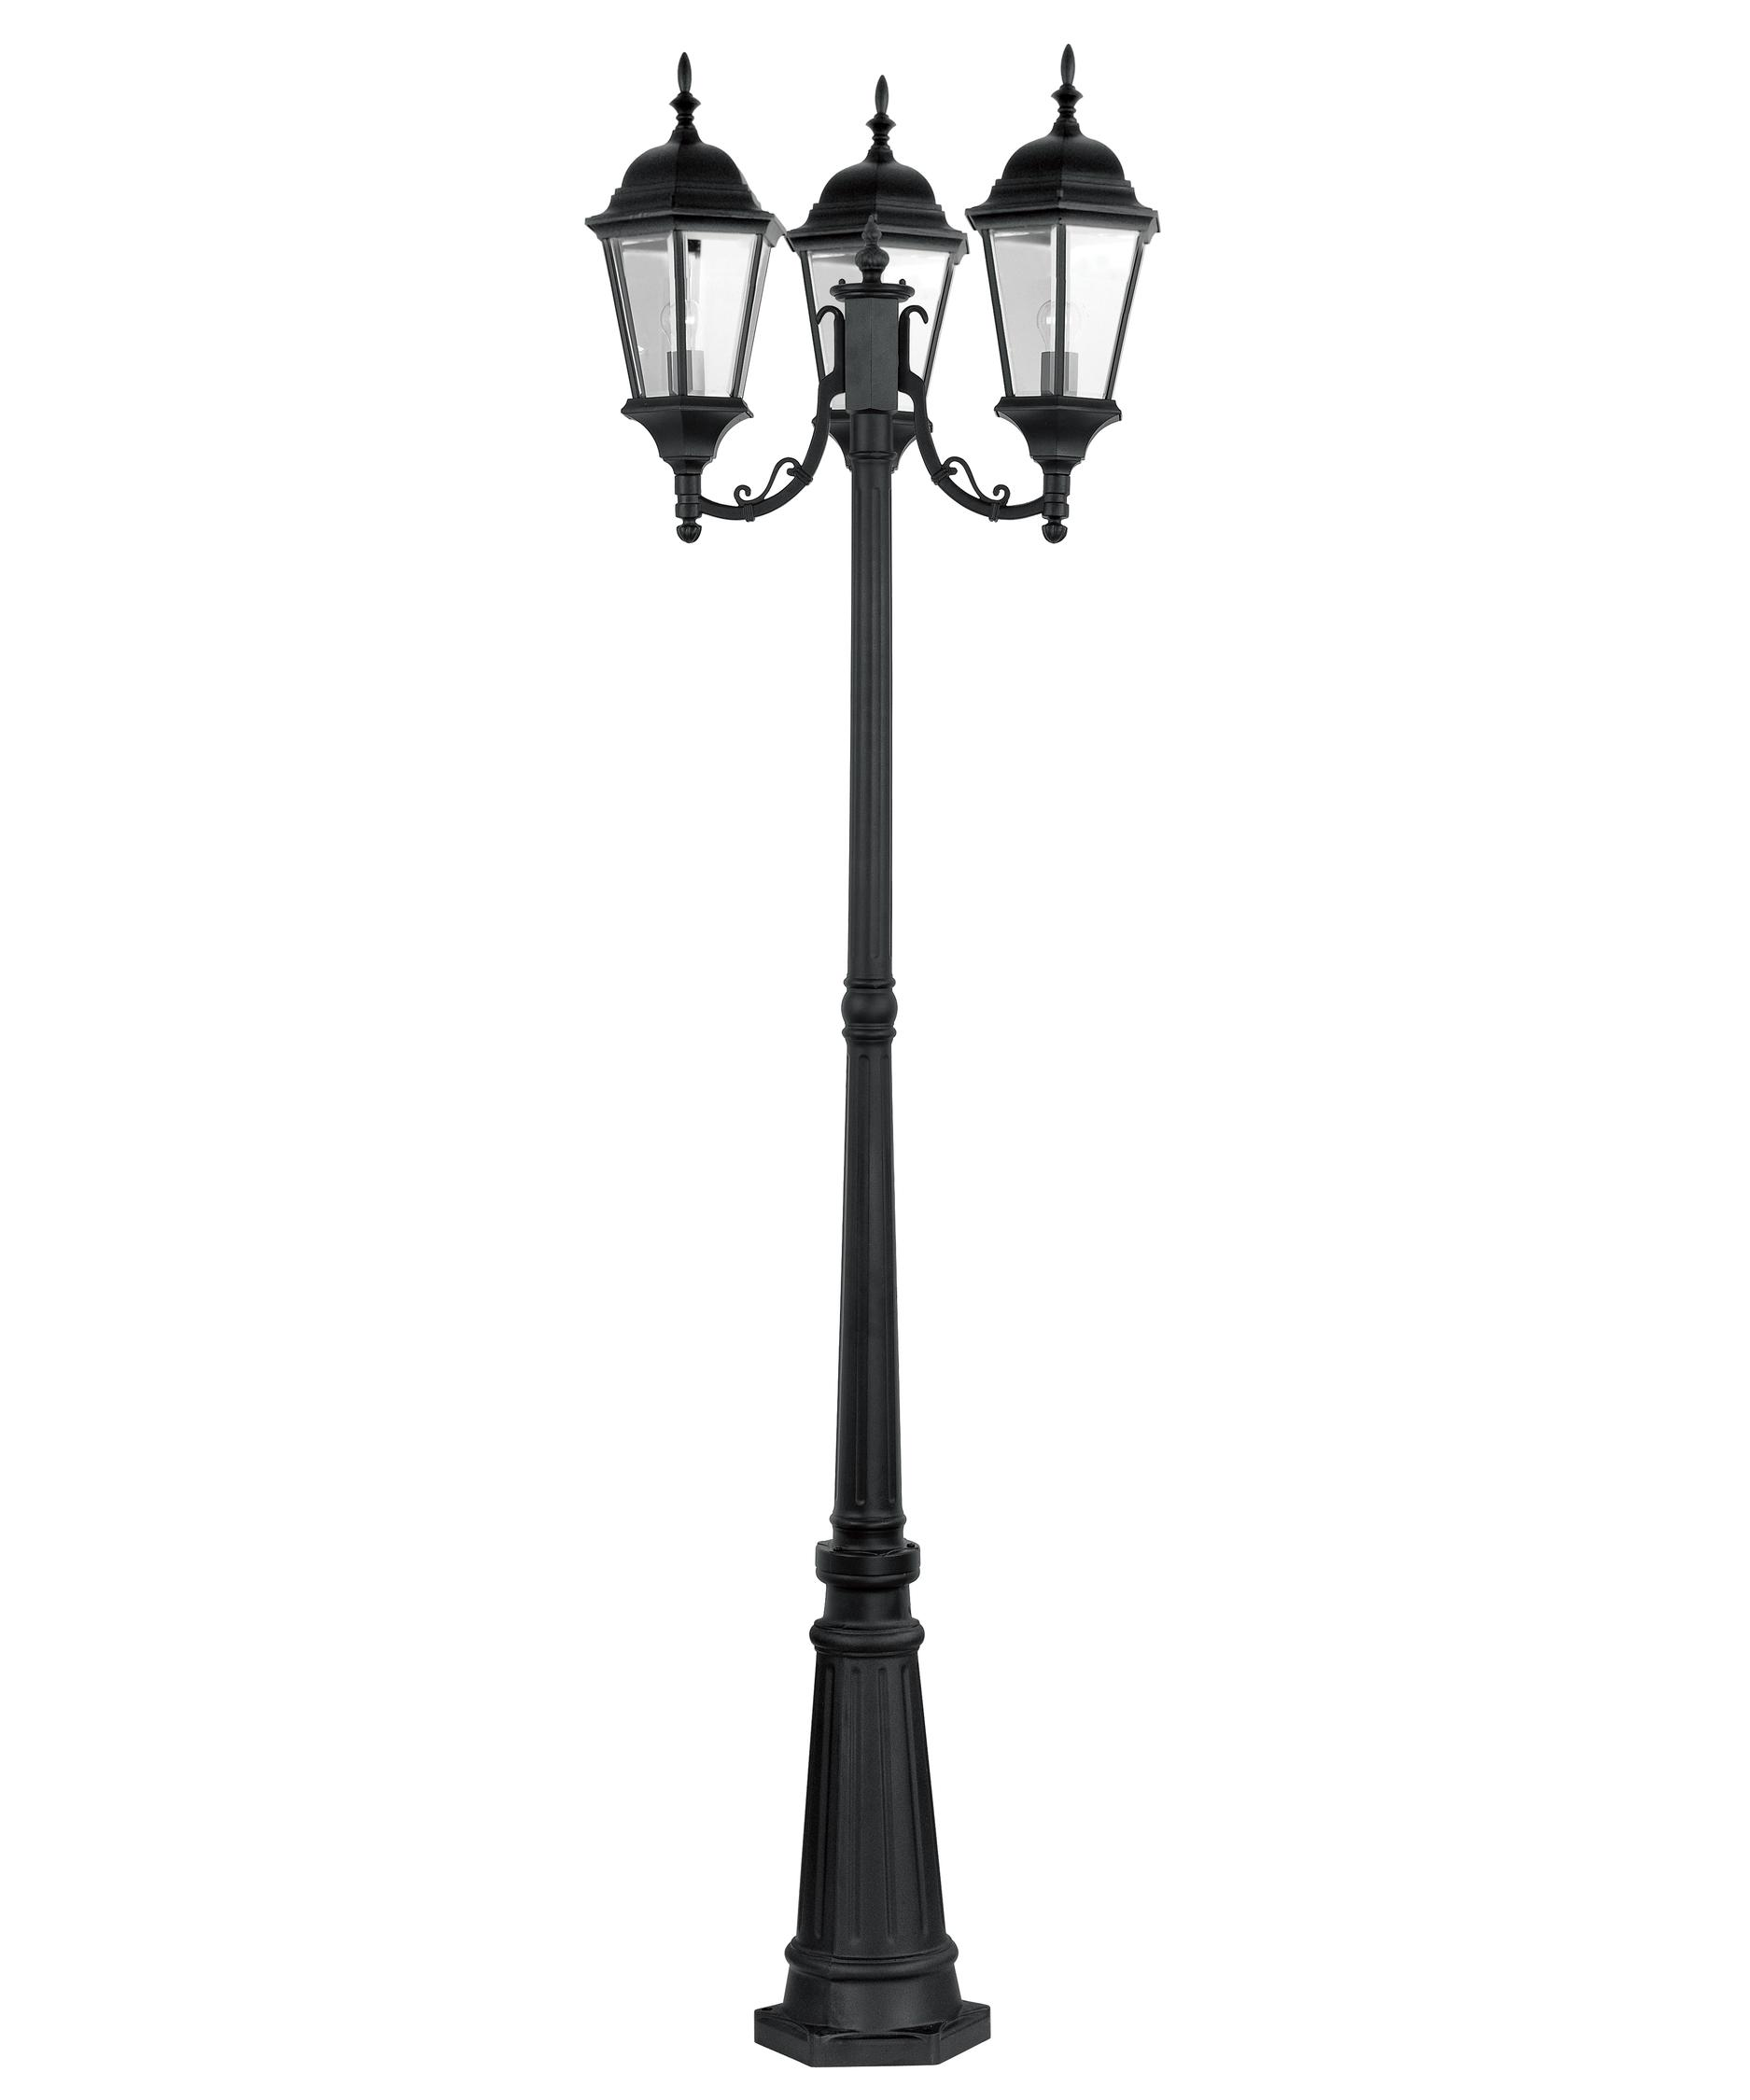 3 lamp post light outdoor photo - 7